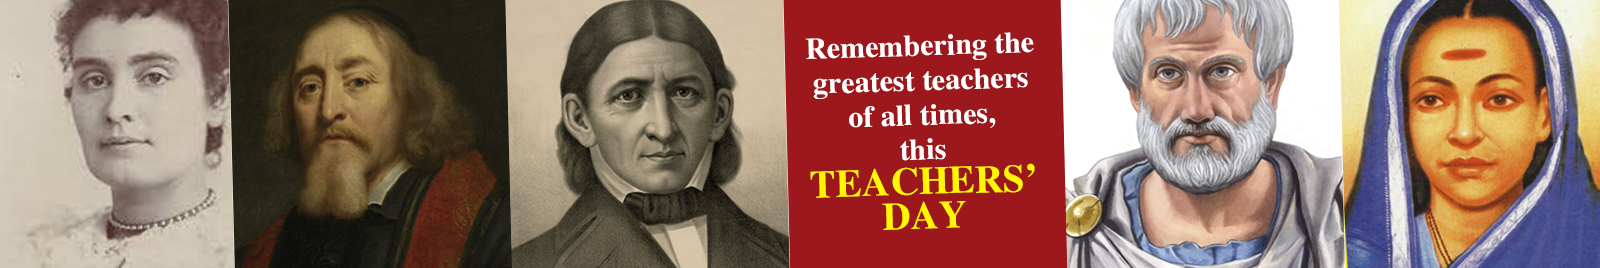 Remembering the greatest teachers of all times, this Teachers' Day